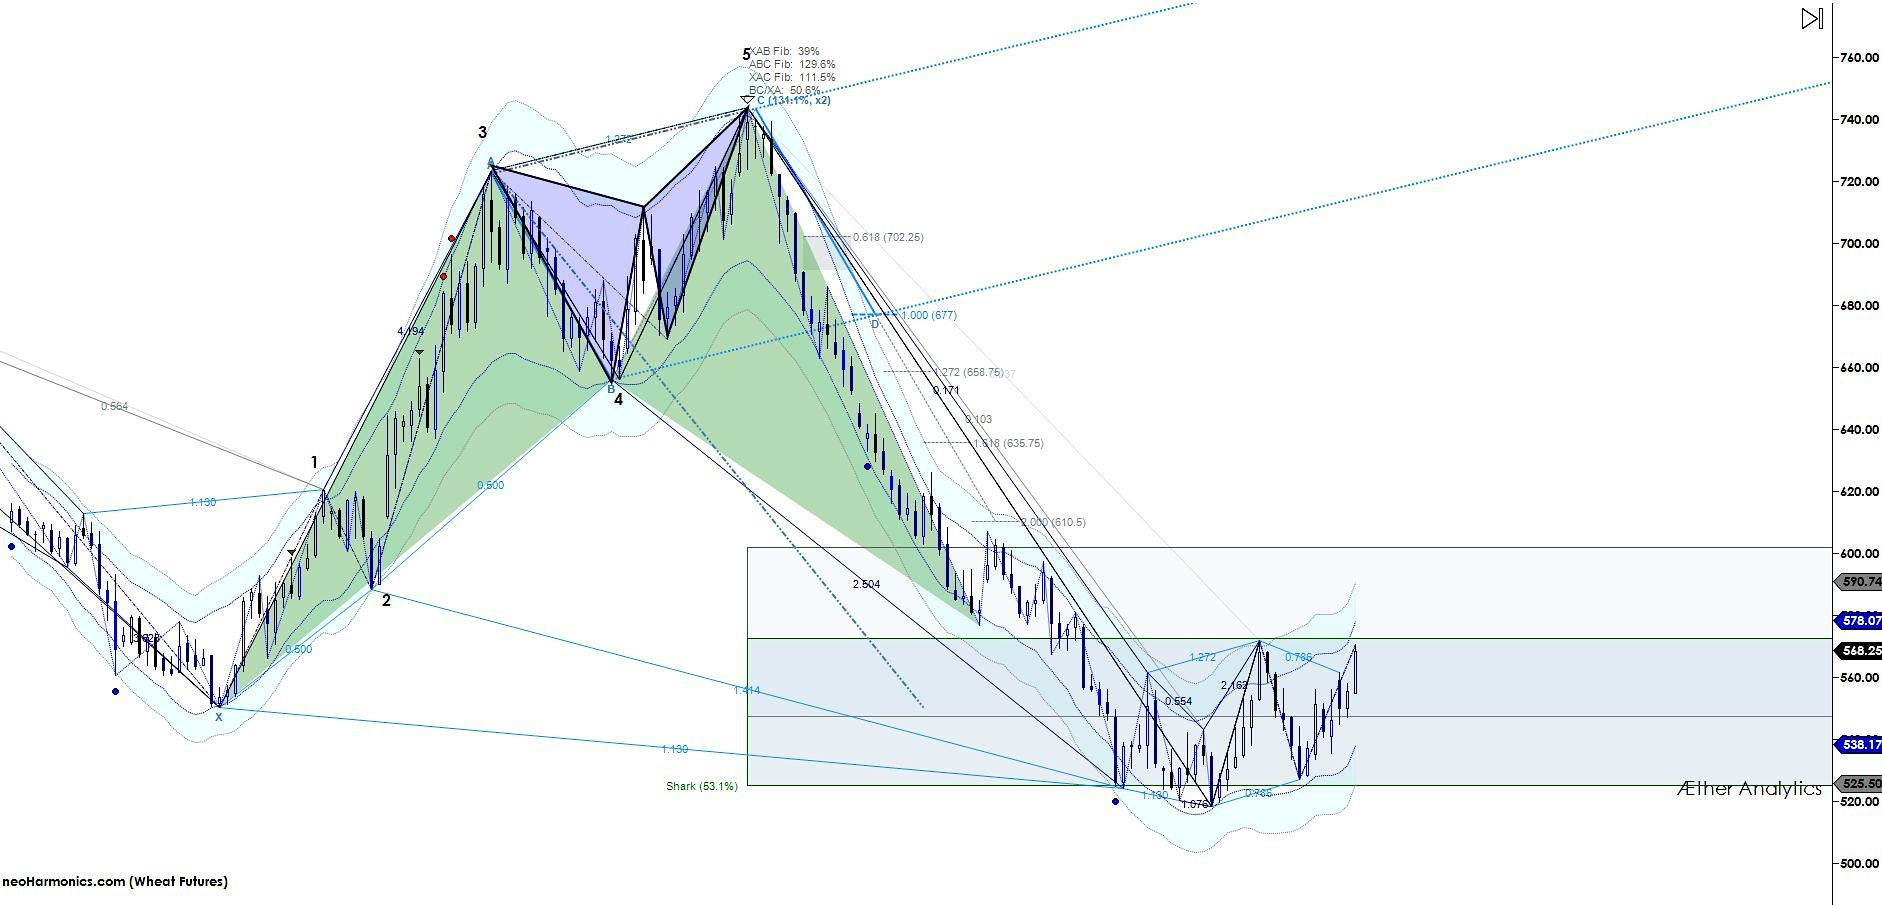 technical analysis of the futures markets pdf